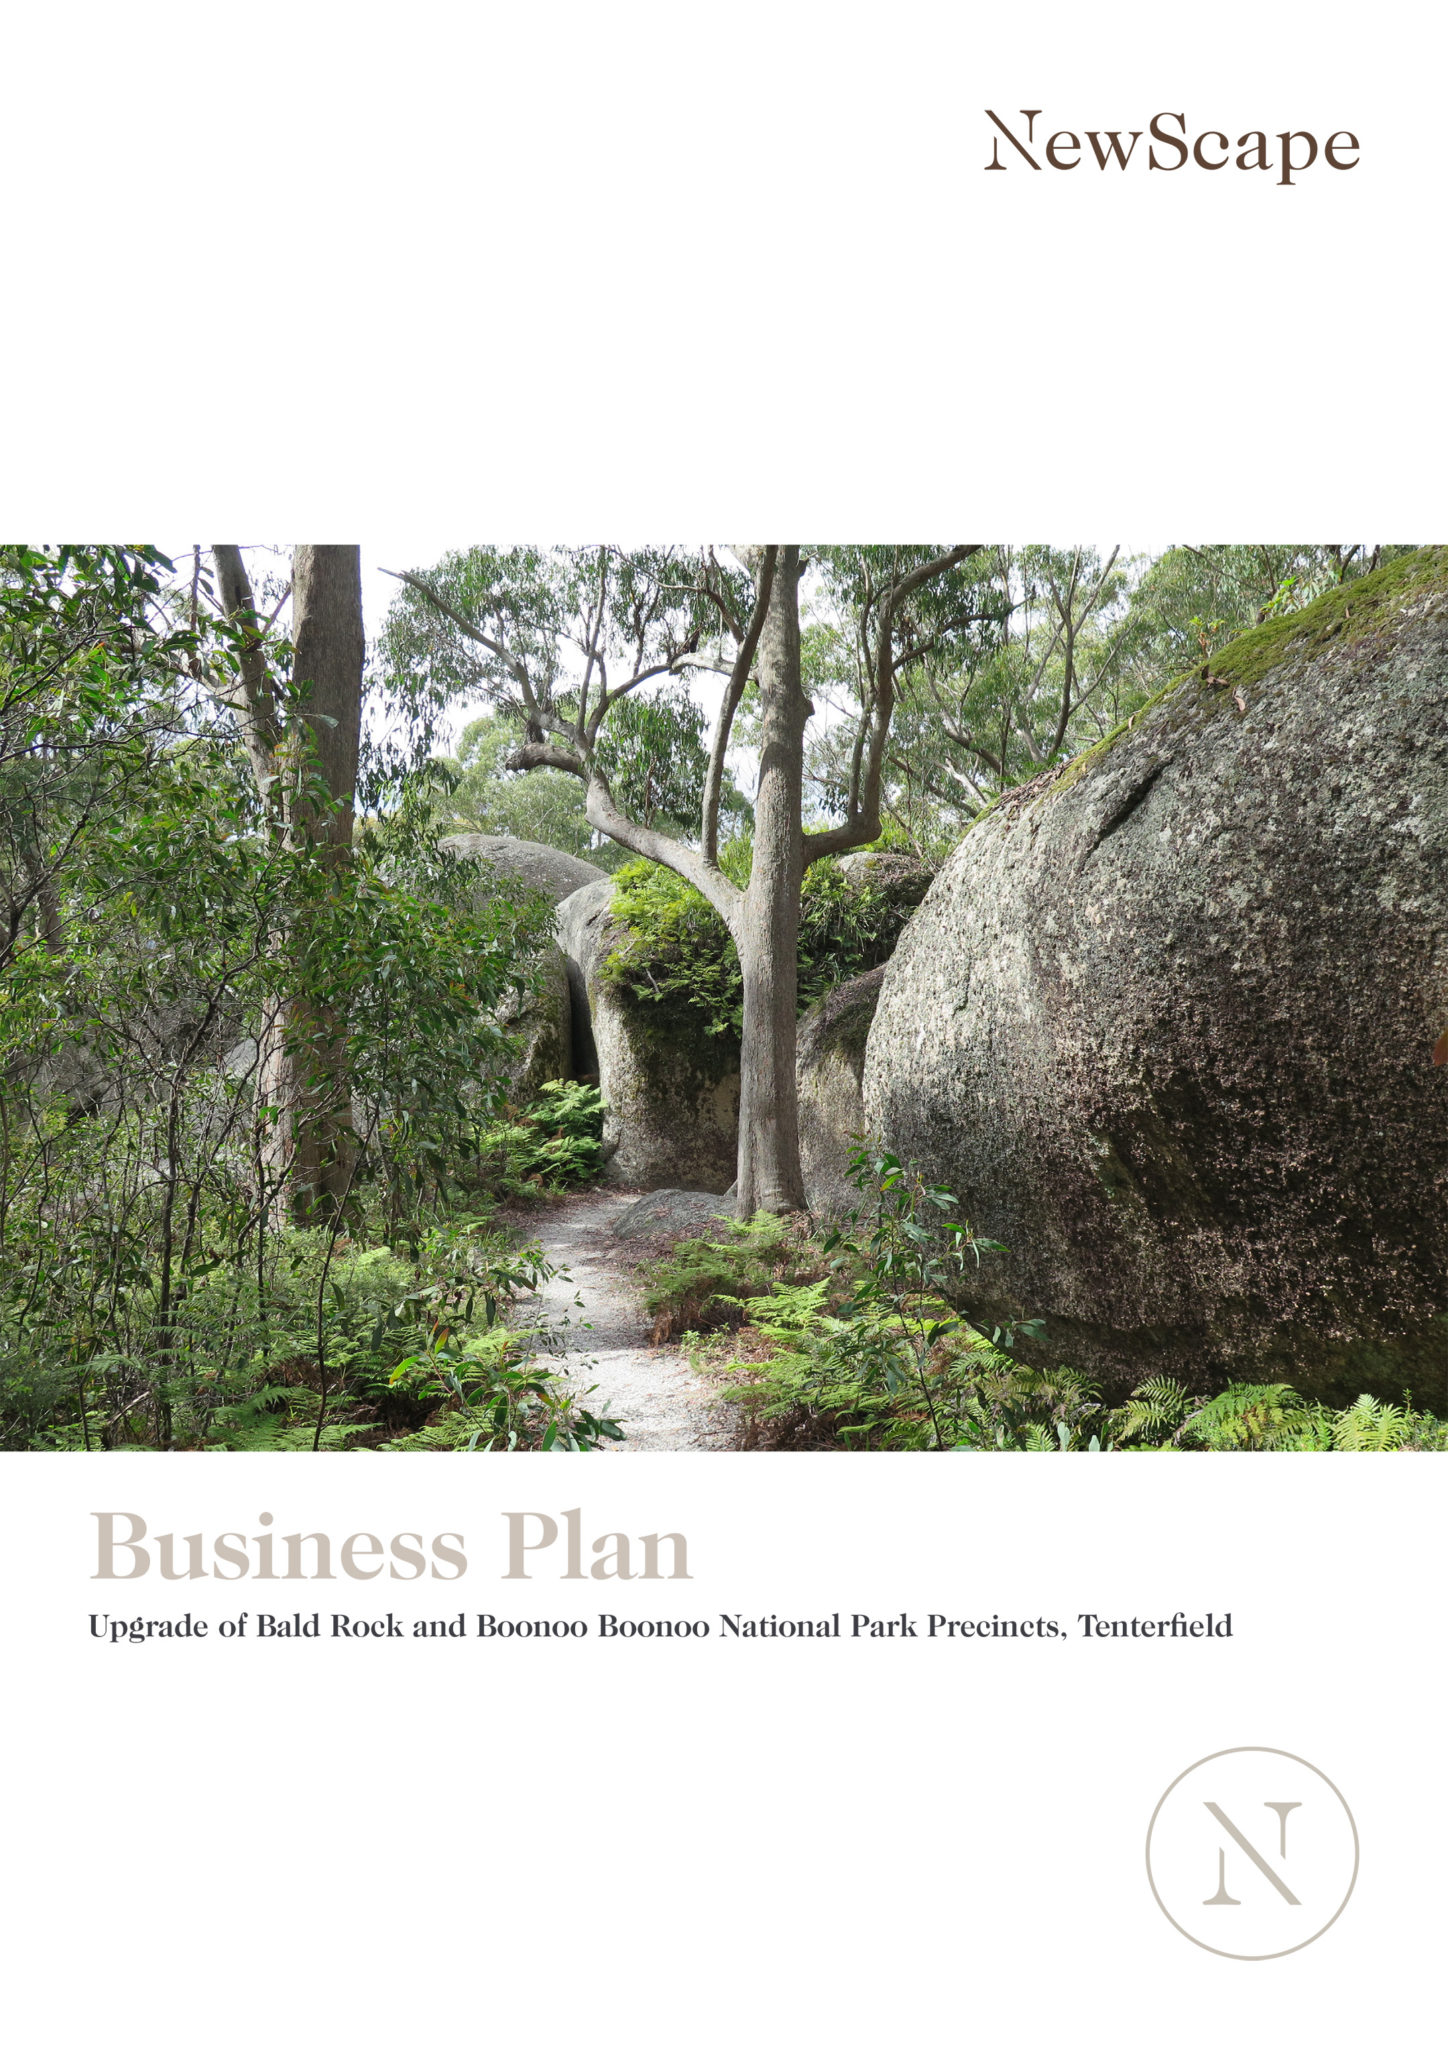 Tenterfield Business Plan high res-1 copy